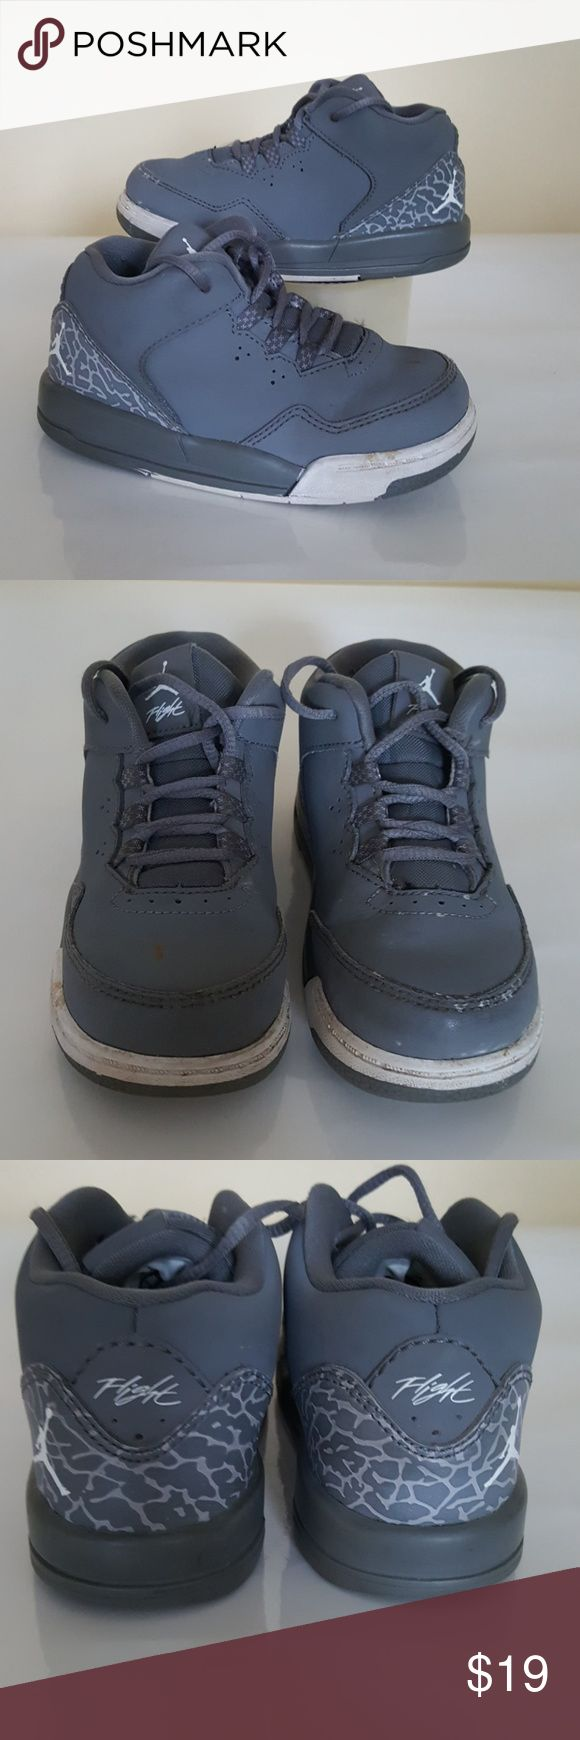 Toddler Jordan shoes In good used condition. Shows some wear see photo 2. Size 8c Jordan Shoes Sneakers